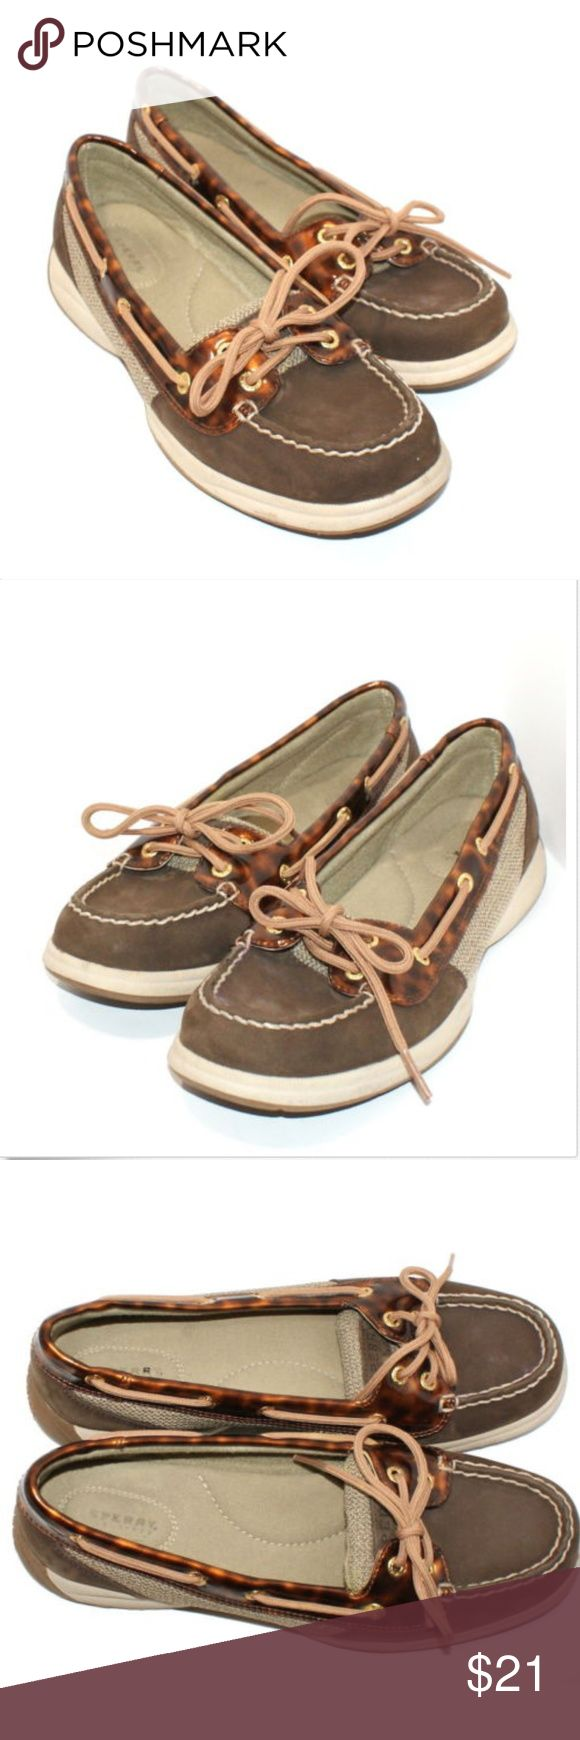 SPERRY TOP-SIDER Womens 8M Brown Leather Boat Shoe SPERRY TOP-SIDER Womens 8M Brown Leather Boat Shoes Sperry Shoes Flats & Loafers